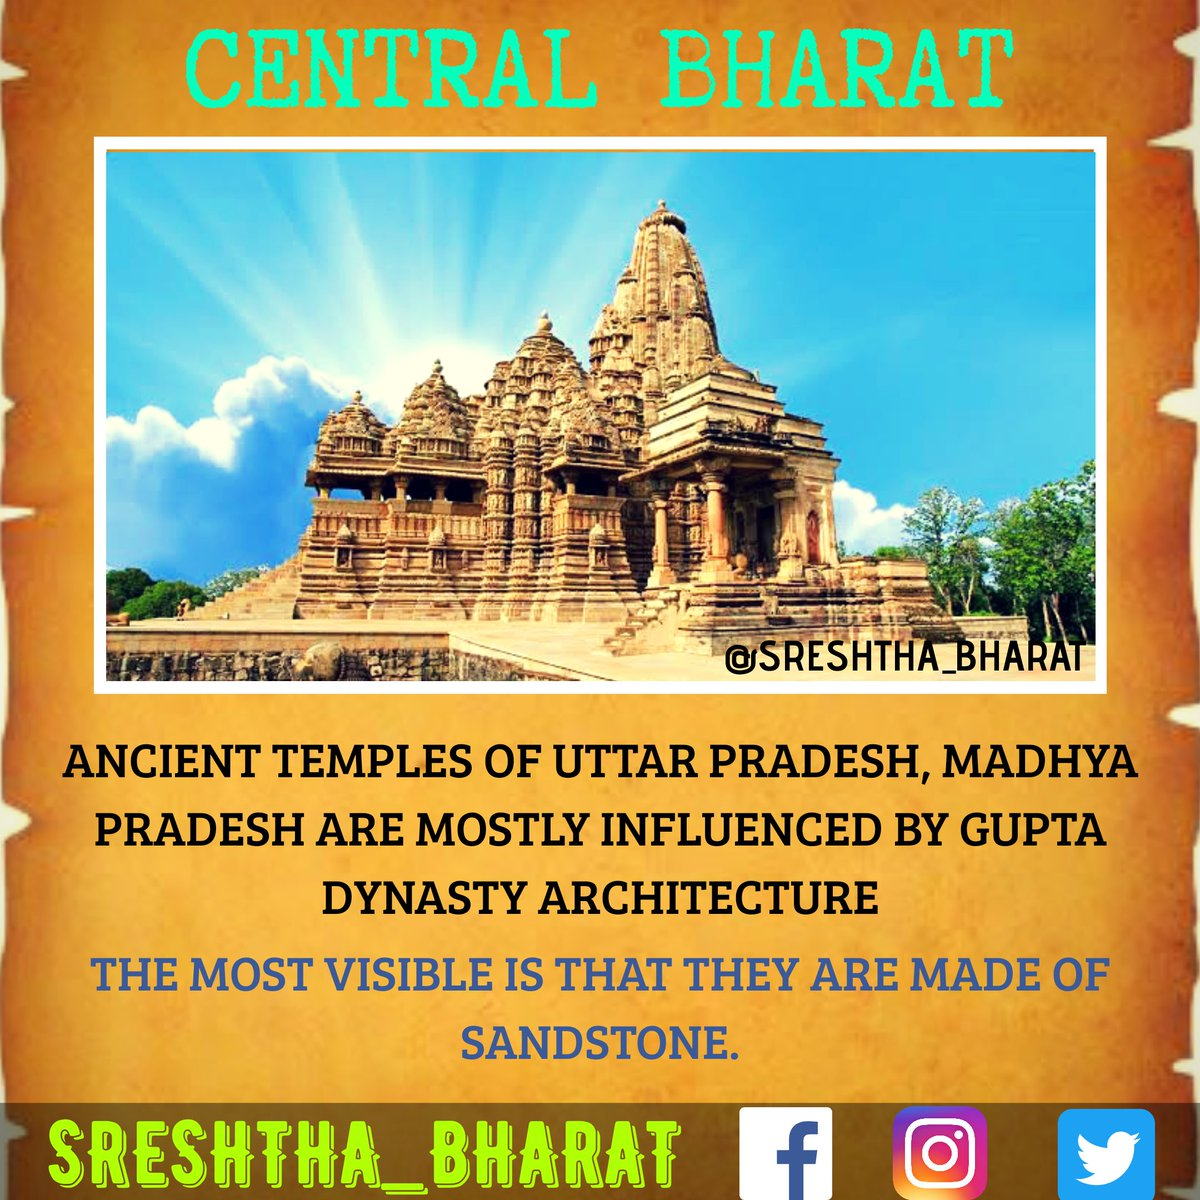 #temple_architecture  We will be getting closer to the Great Temple Architecture of our Sreshtha Bharat  Follow @Sreshthabharat on Facebook | Instagram | Twitter 🙏  #indianculture #indianarchitecture #hinduarchitecture #temple  #worship #templeworship #dravida #mandir #devasthan https://t.co/bHBEvbDFYN